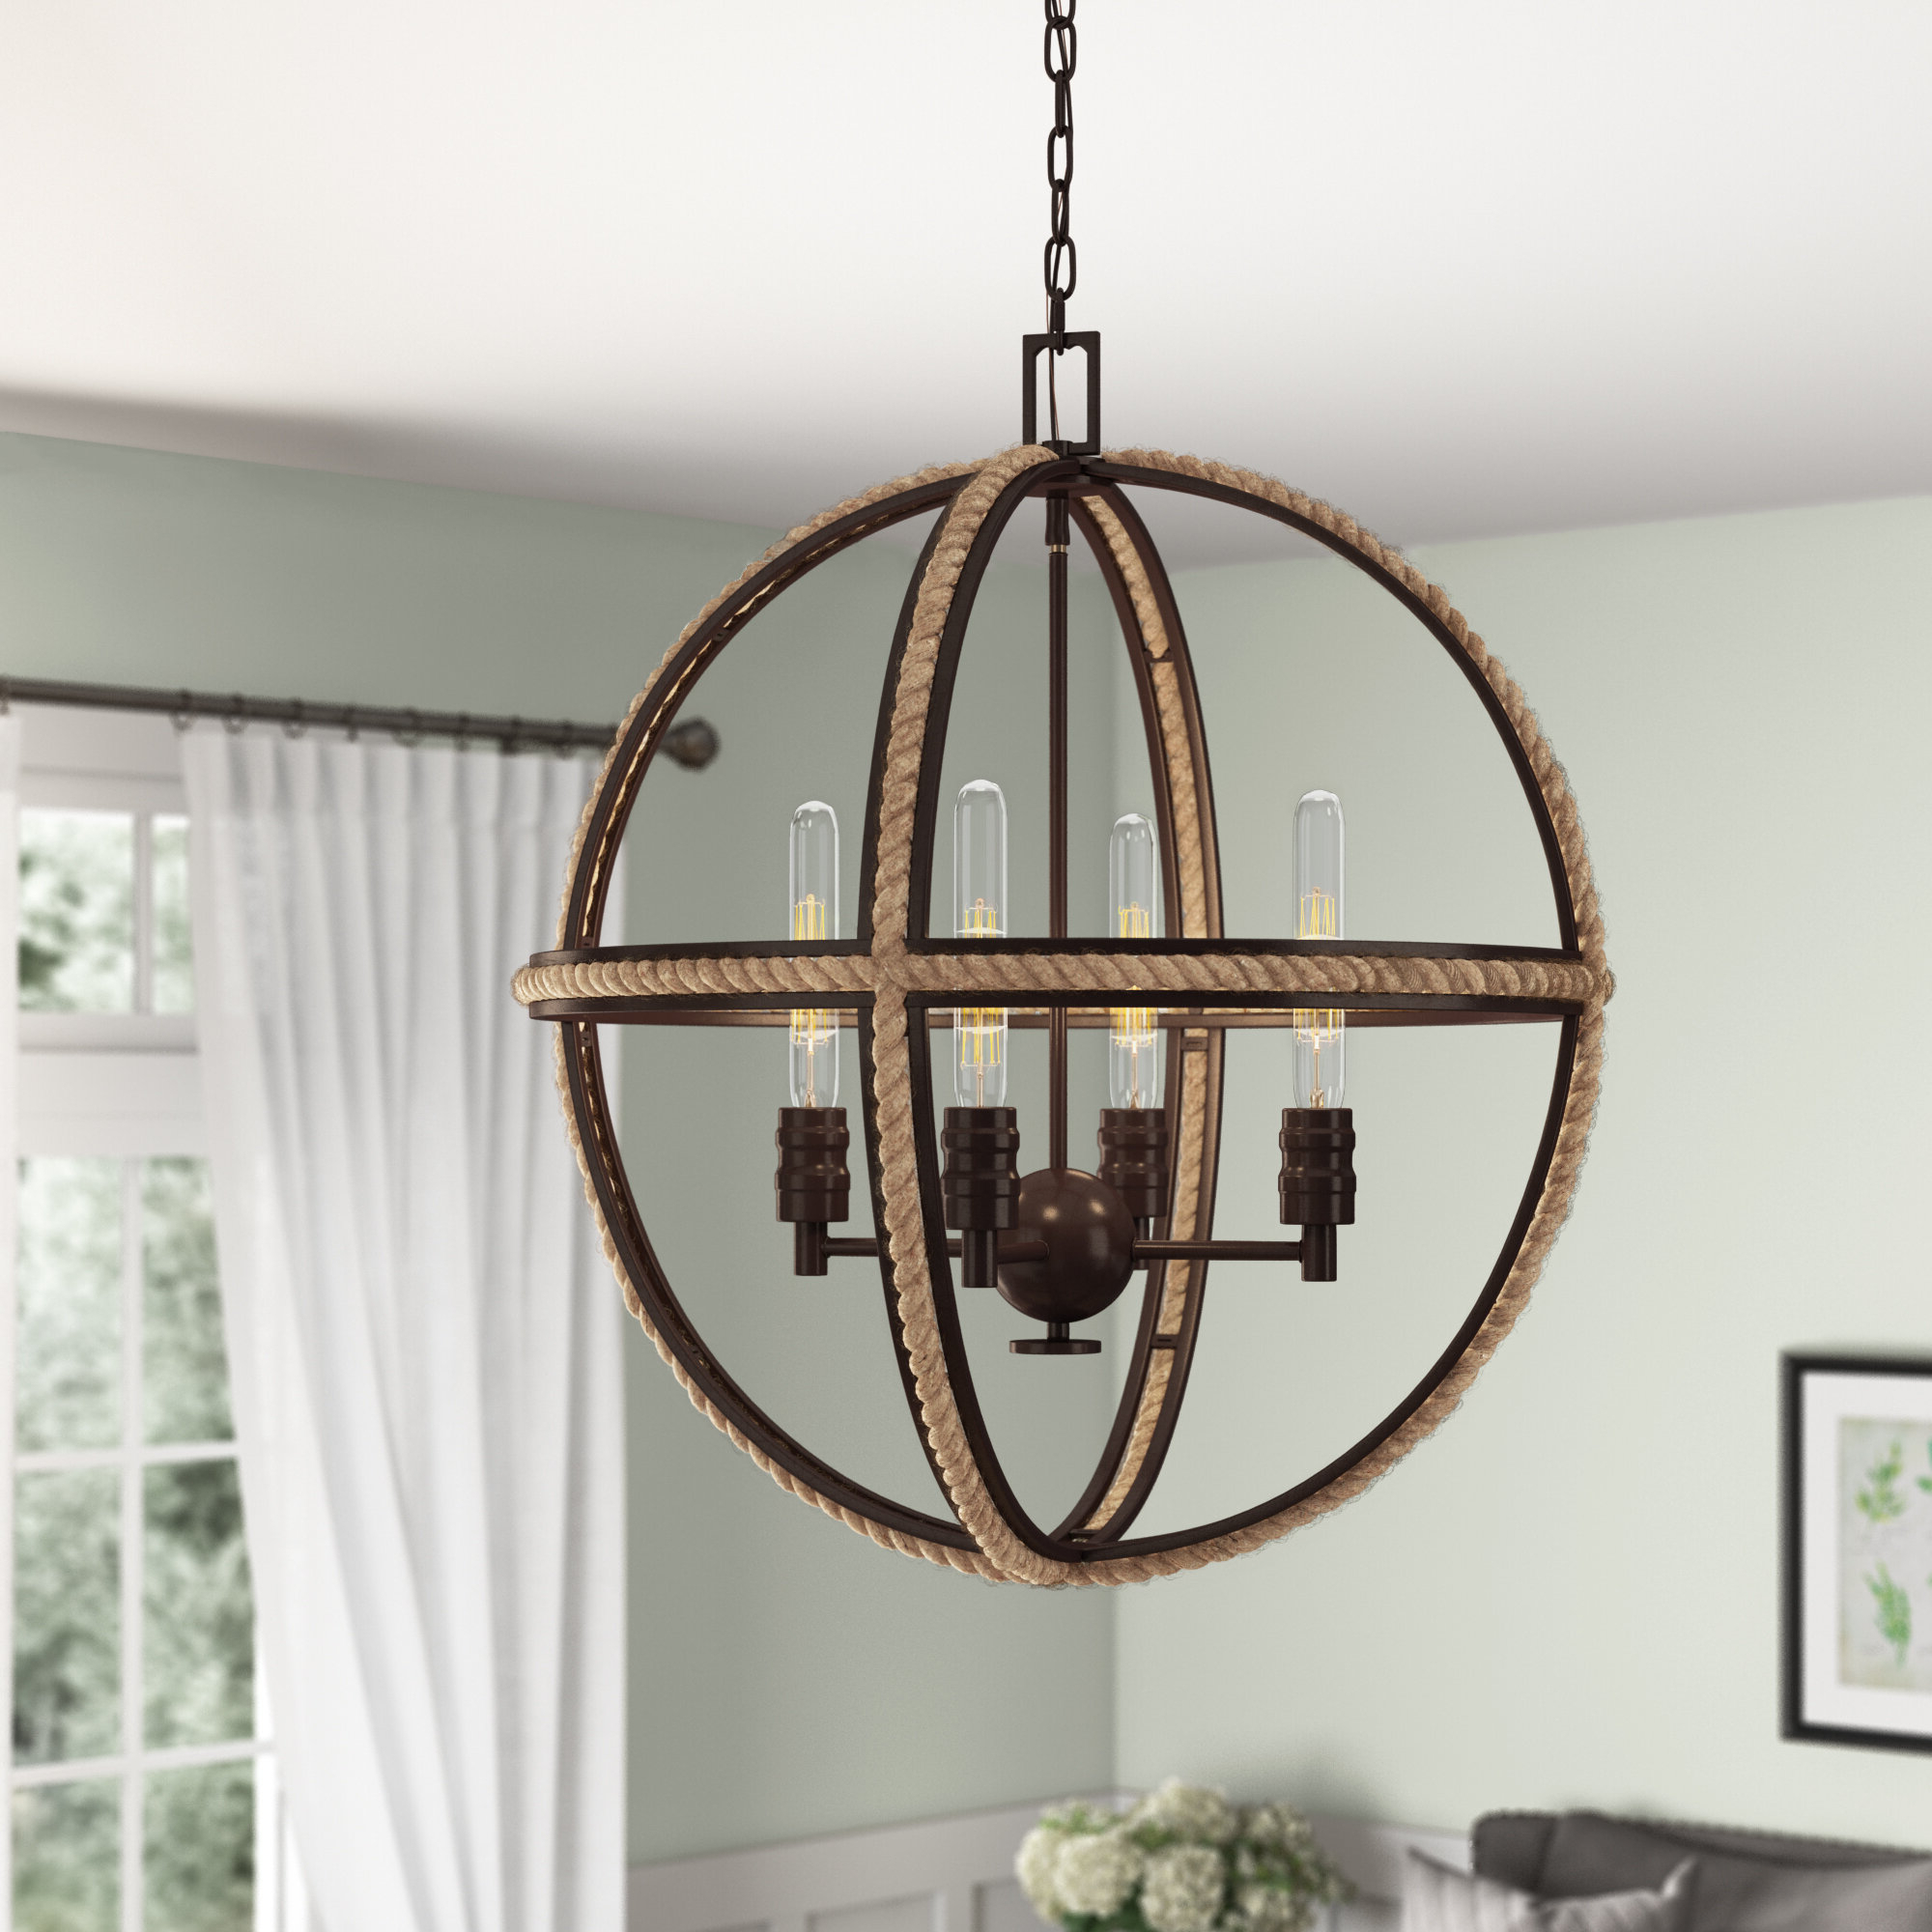 Fashionable Kennett 4 Light Globe Chandelier Throughout Donna 4 Light Globe Chandeliers (View 15 of 20)